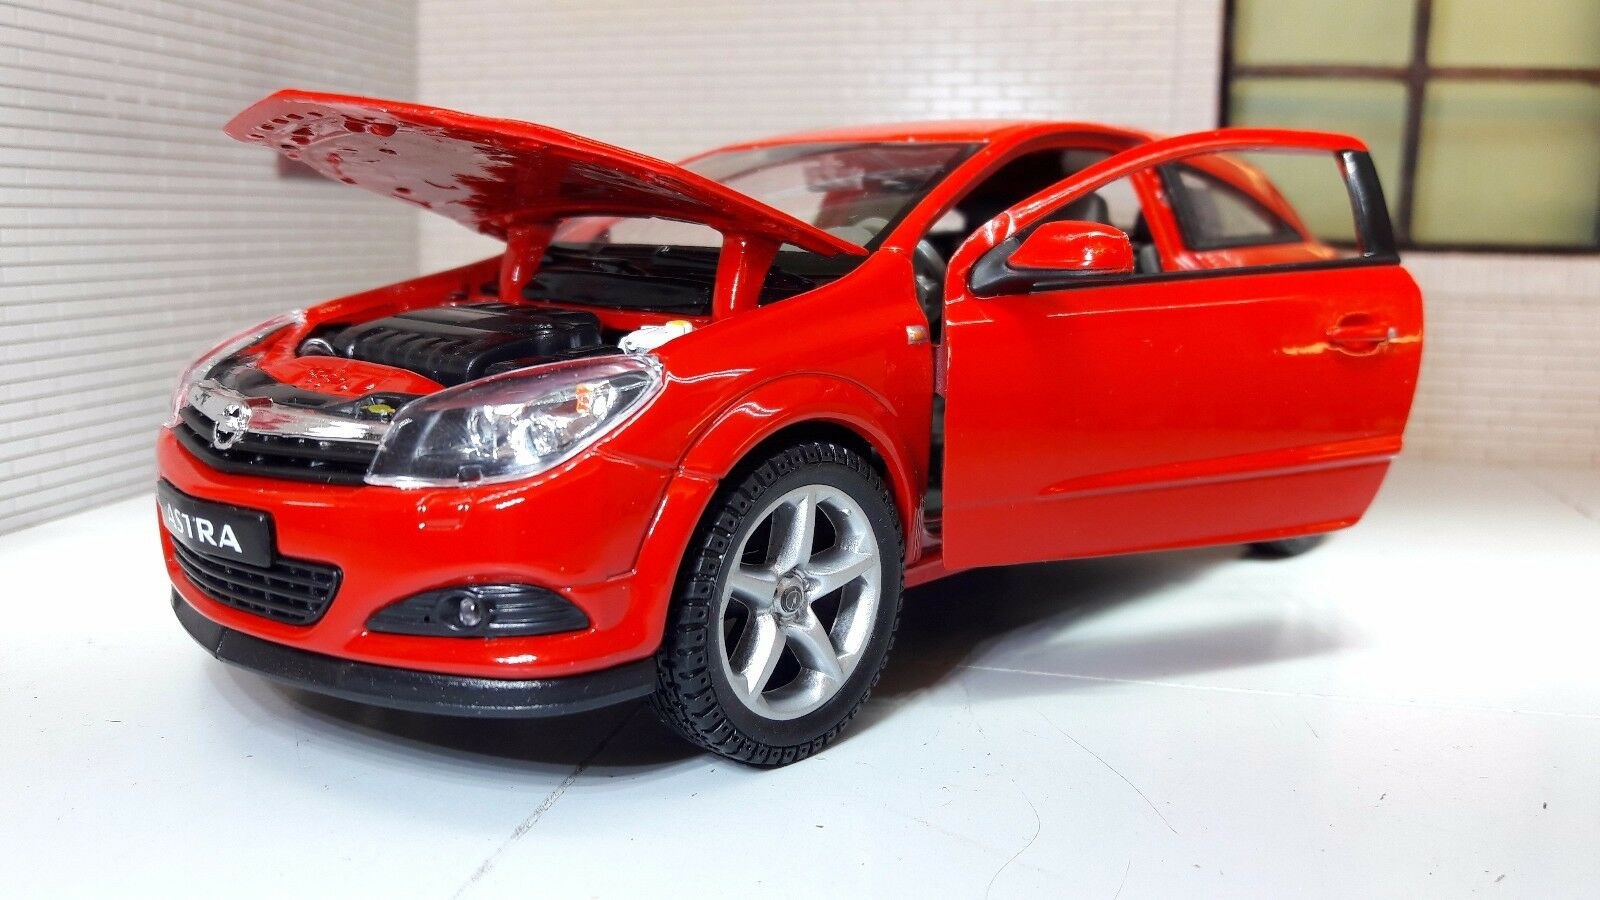 G LGB 1 24 Scale Vauxhall Opel Astra GTC VXR Red 22469 Diecast Model Car 2008